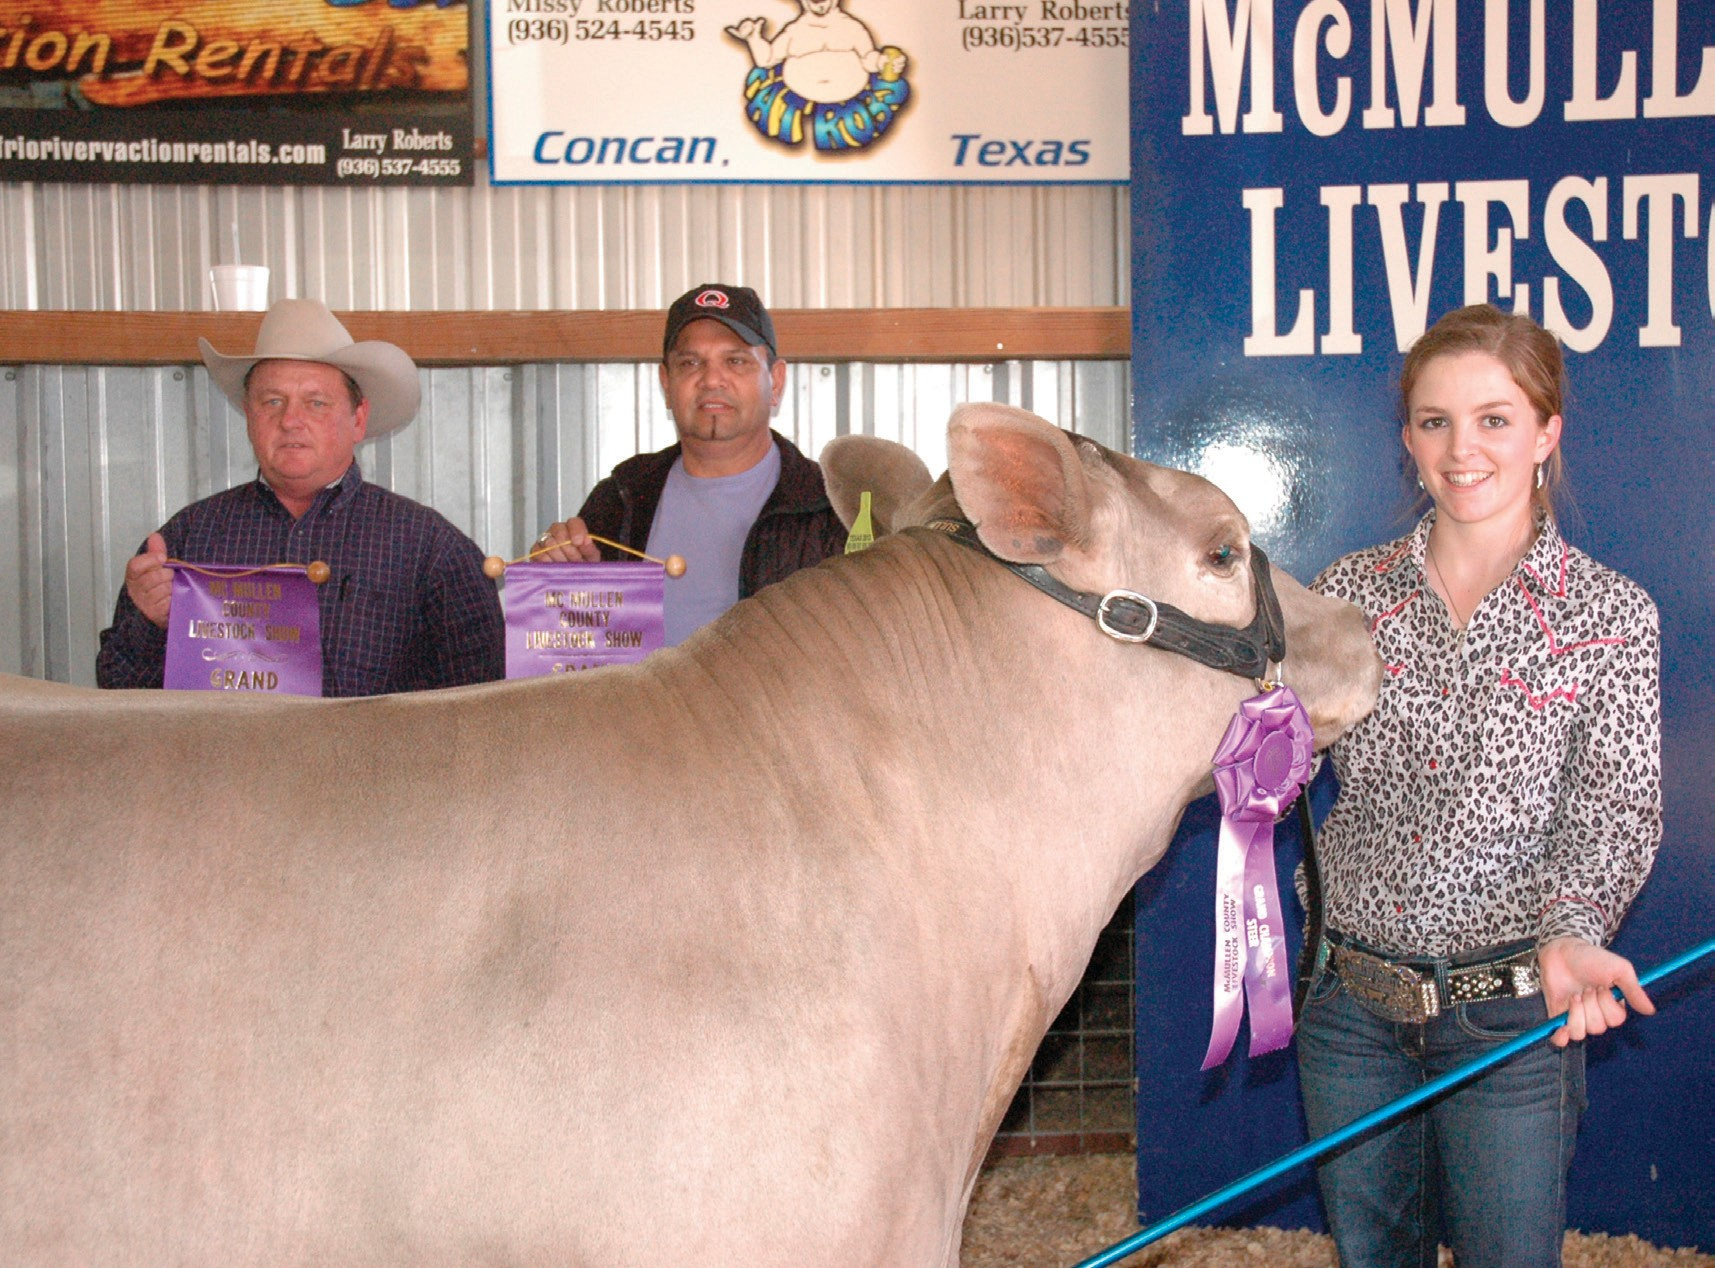 The McMullen County Livestock Show Grand Champion Steer was awarded to Ashely Lewis. Jody johnson (left) of Strike Construction and Leo Quintanilla (middle) of Q Haul bought it for $13,000, up $3,000 from 2012.